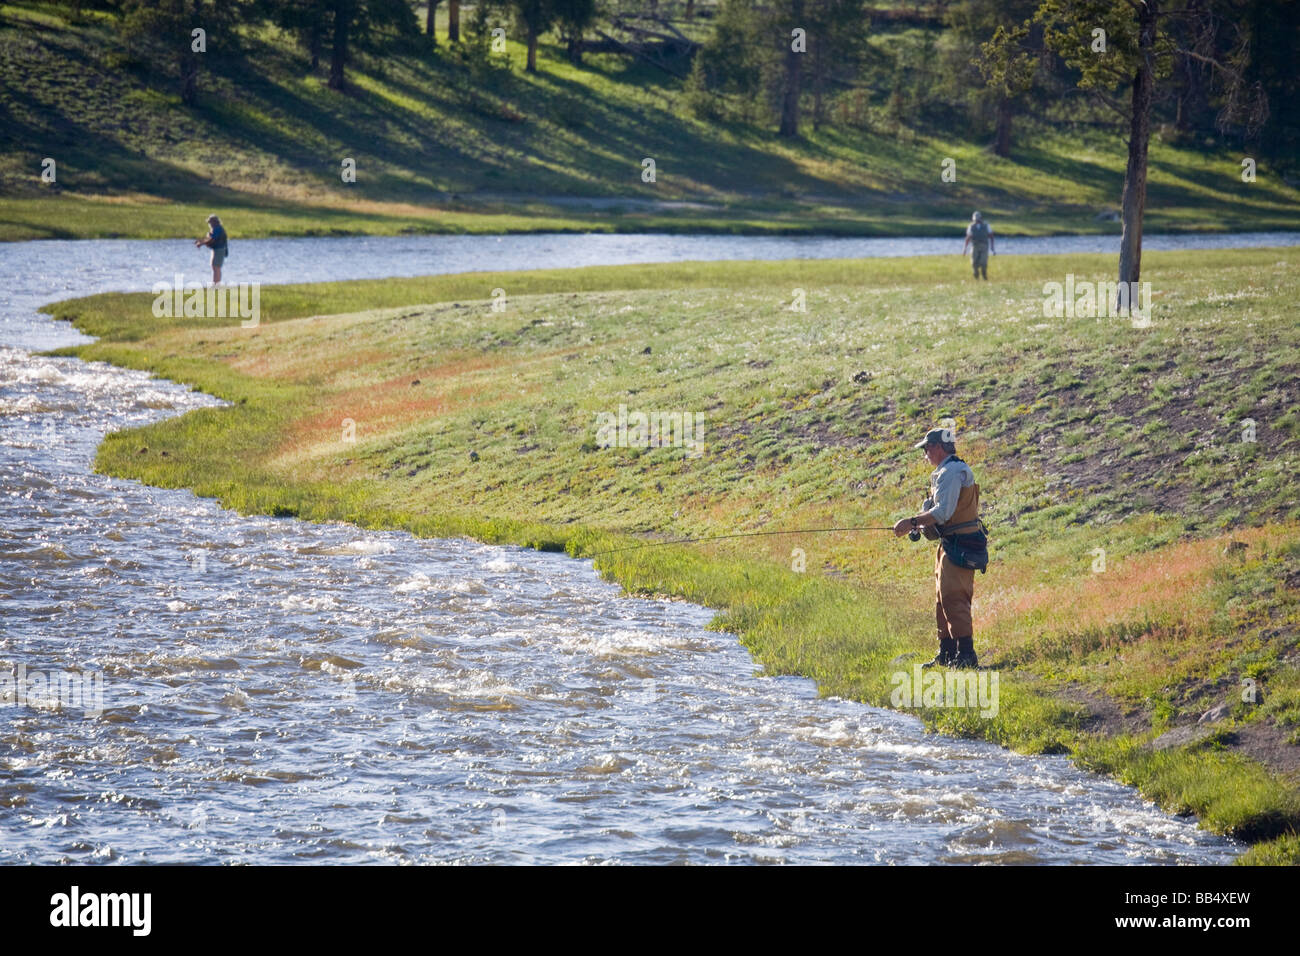 Wy yellowstone national park fly fishing in the for Fly fishing yellowstone river